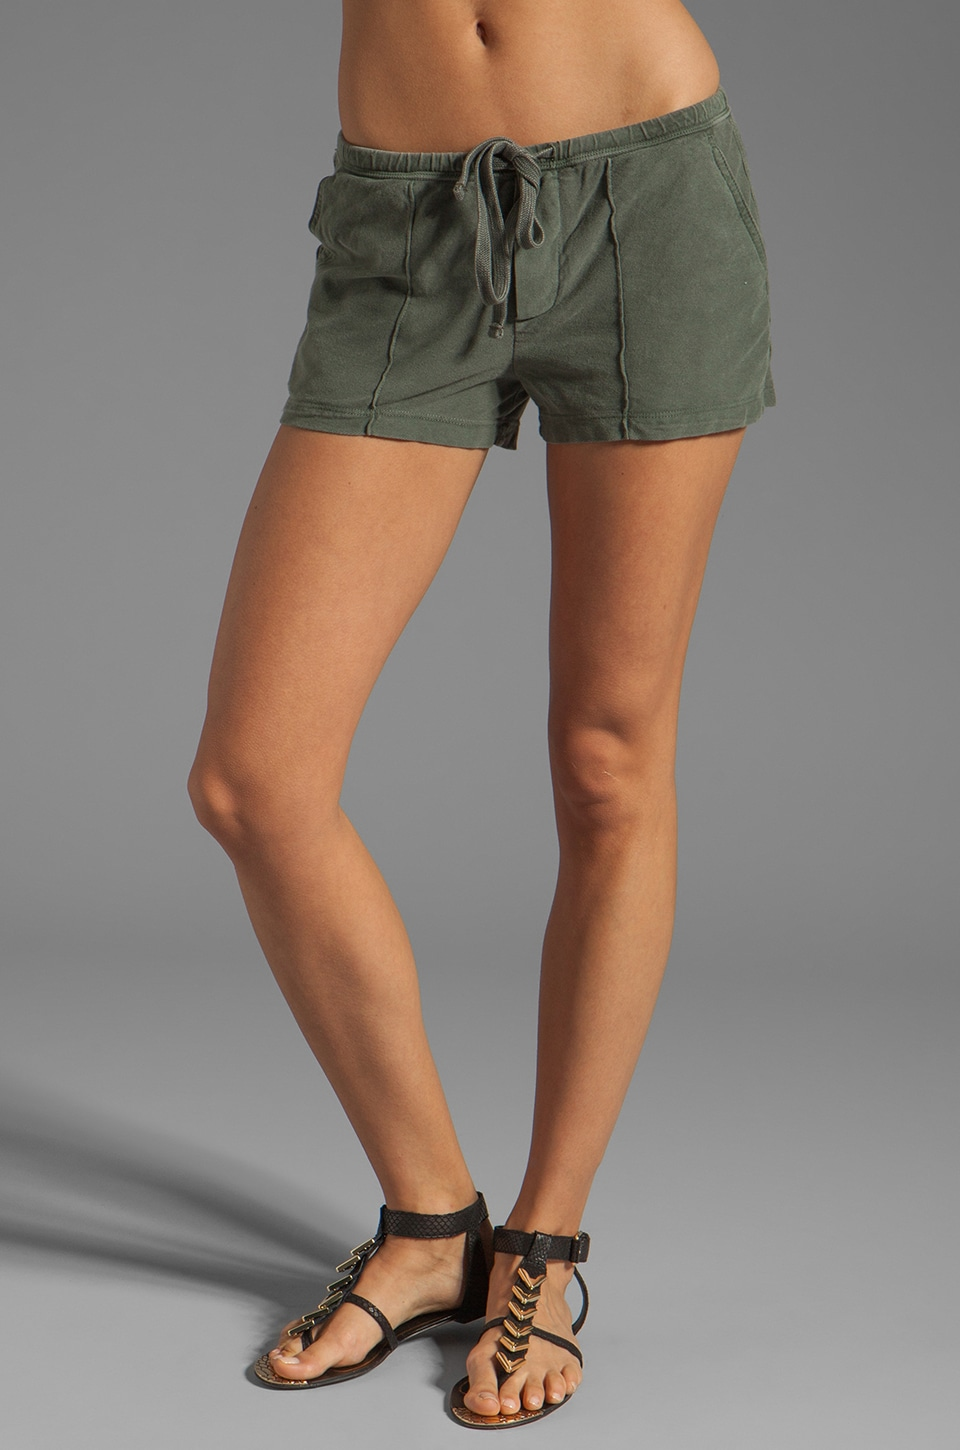 James Perse Pintucked Knit Twill Short in Alligator